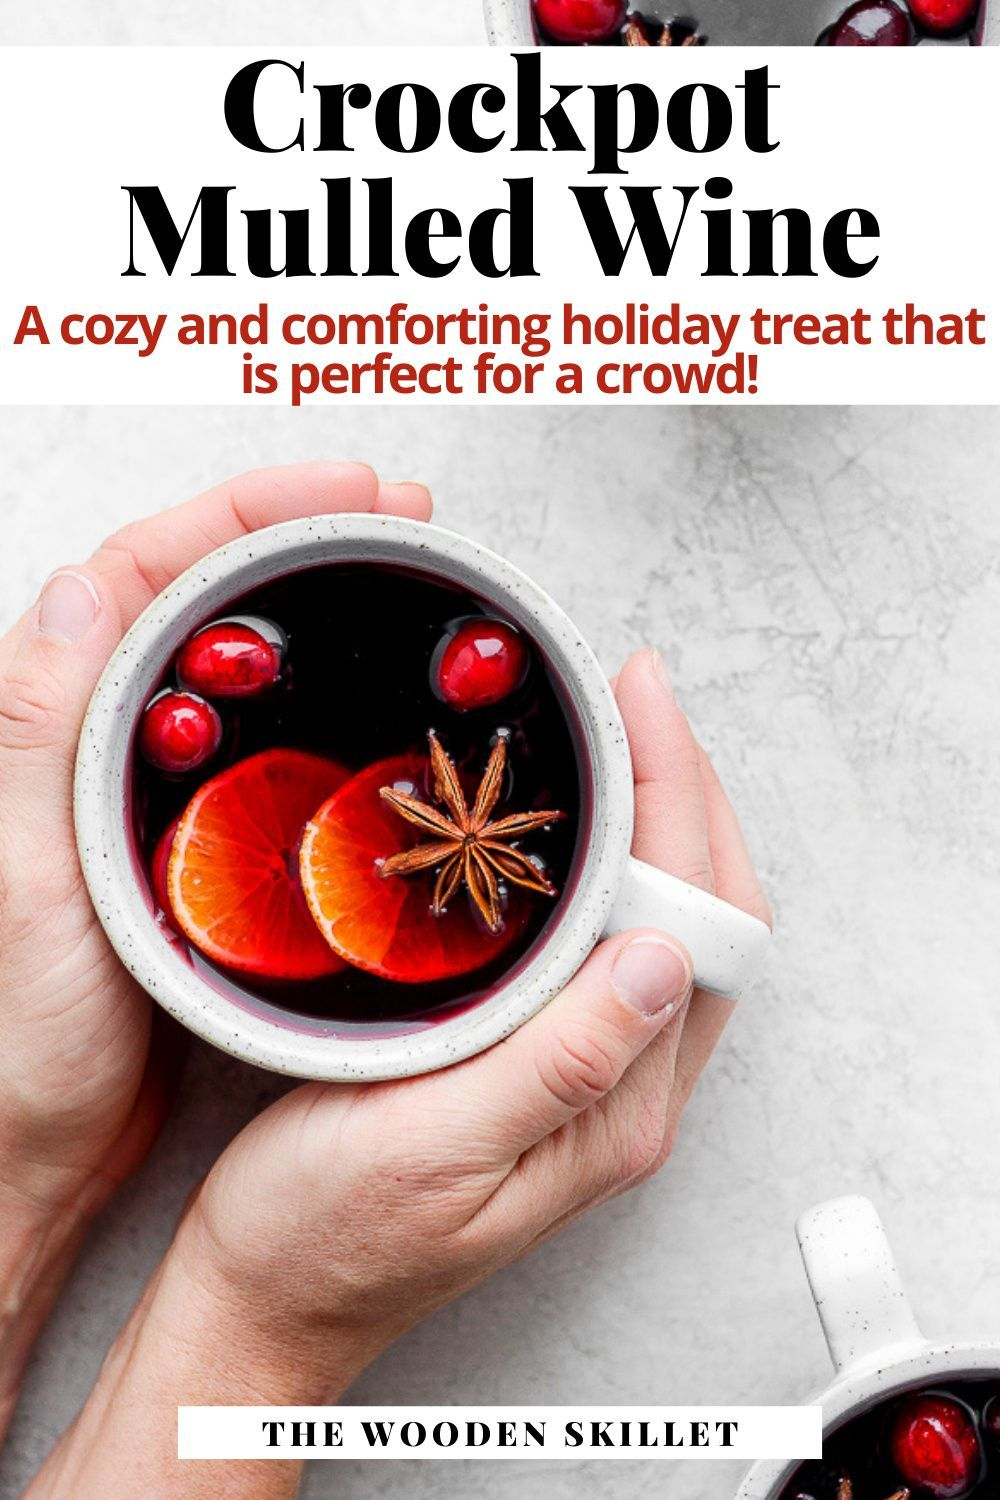 Easy Crockpot Mulled Wine The Wooden Skillet Recipe In 2020 Mulled Wine Recipe Mulled Wine Crockpot Punch Recipes